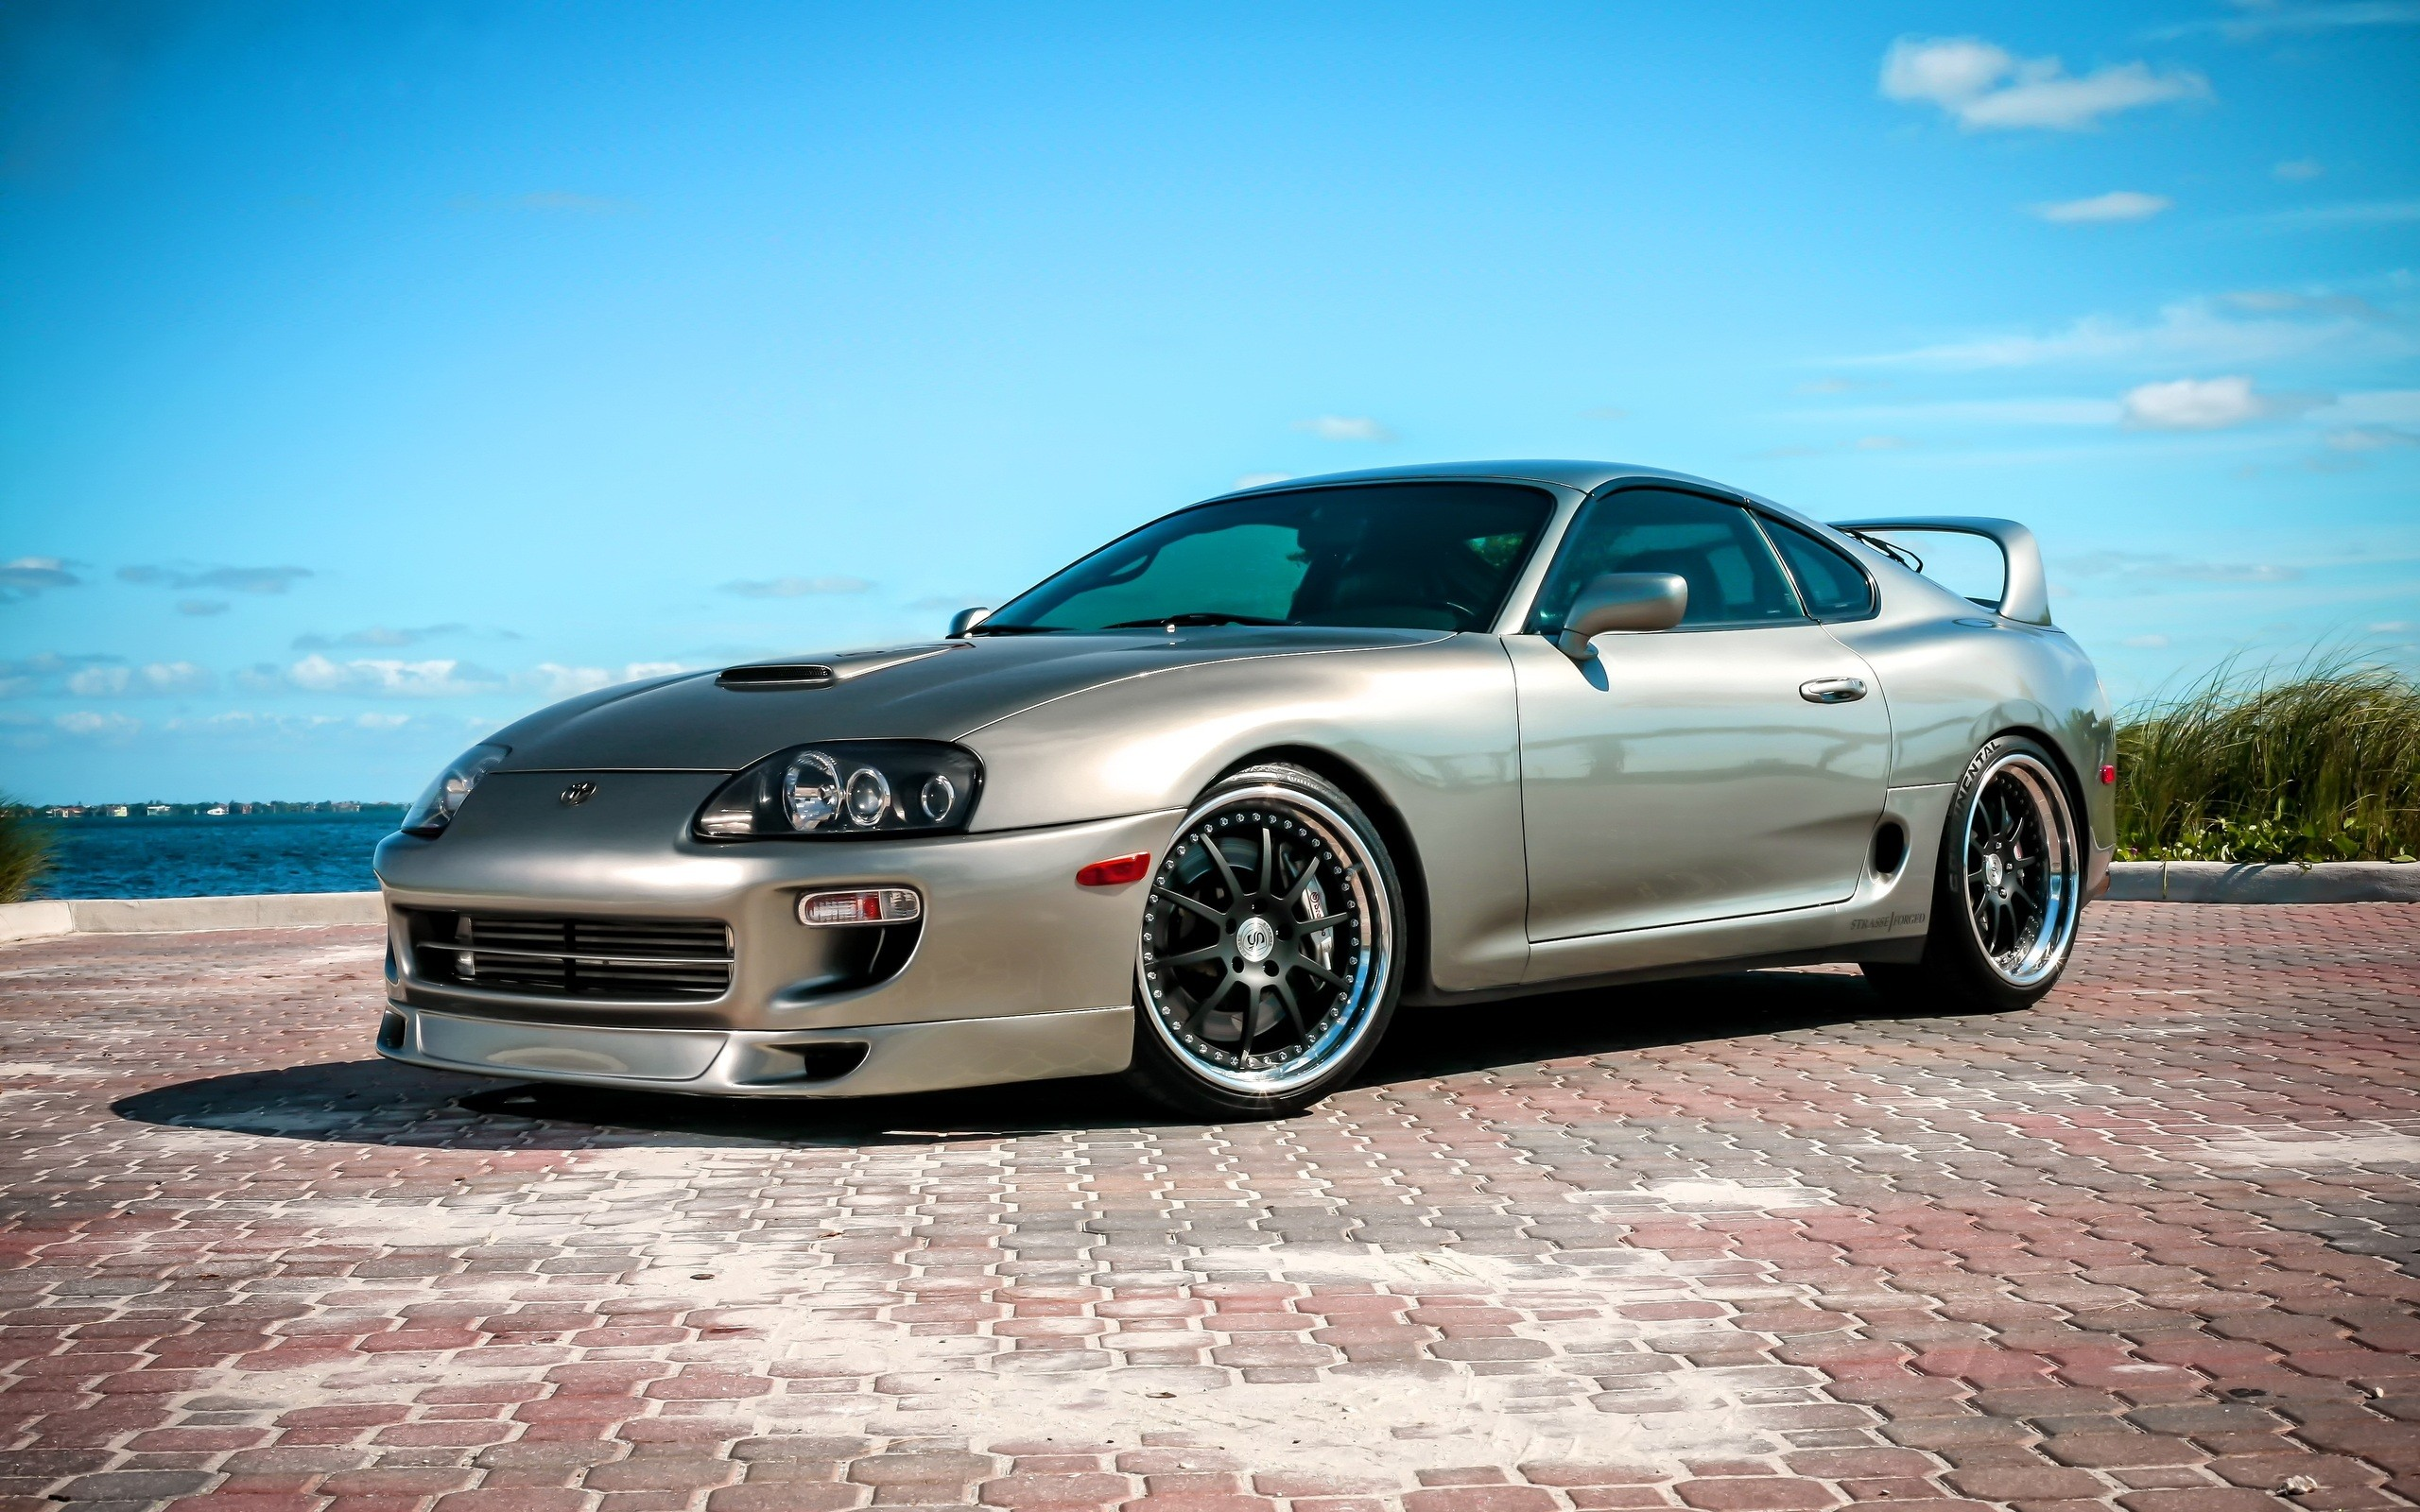 Toyota Supra Release >> Toyota Supra Wallpaper iPhone 5 - WallpaperSafari